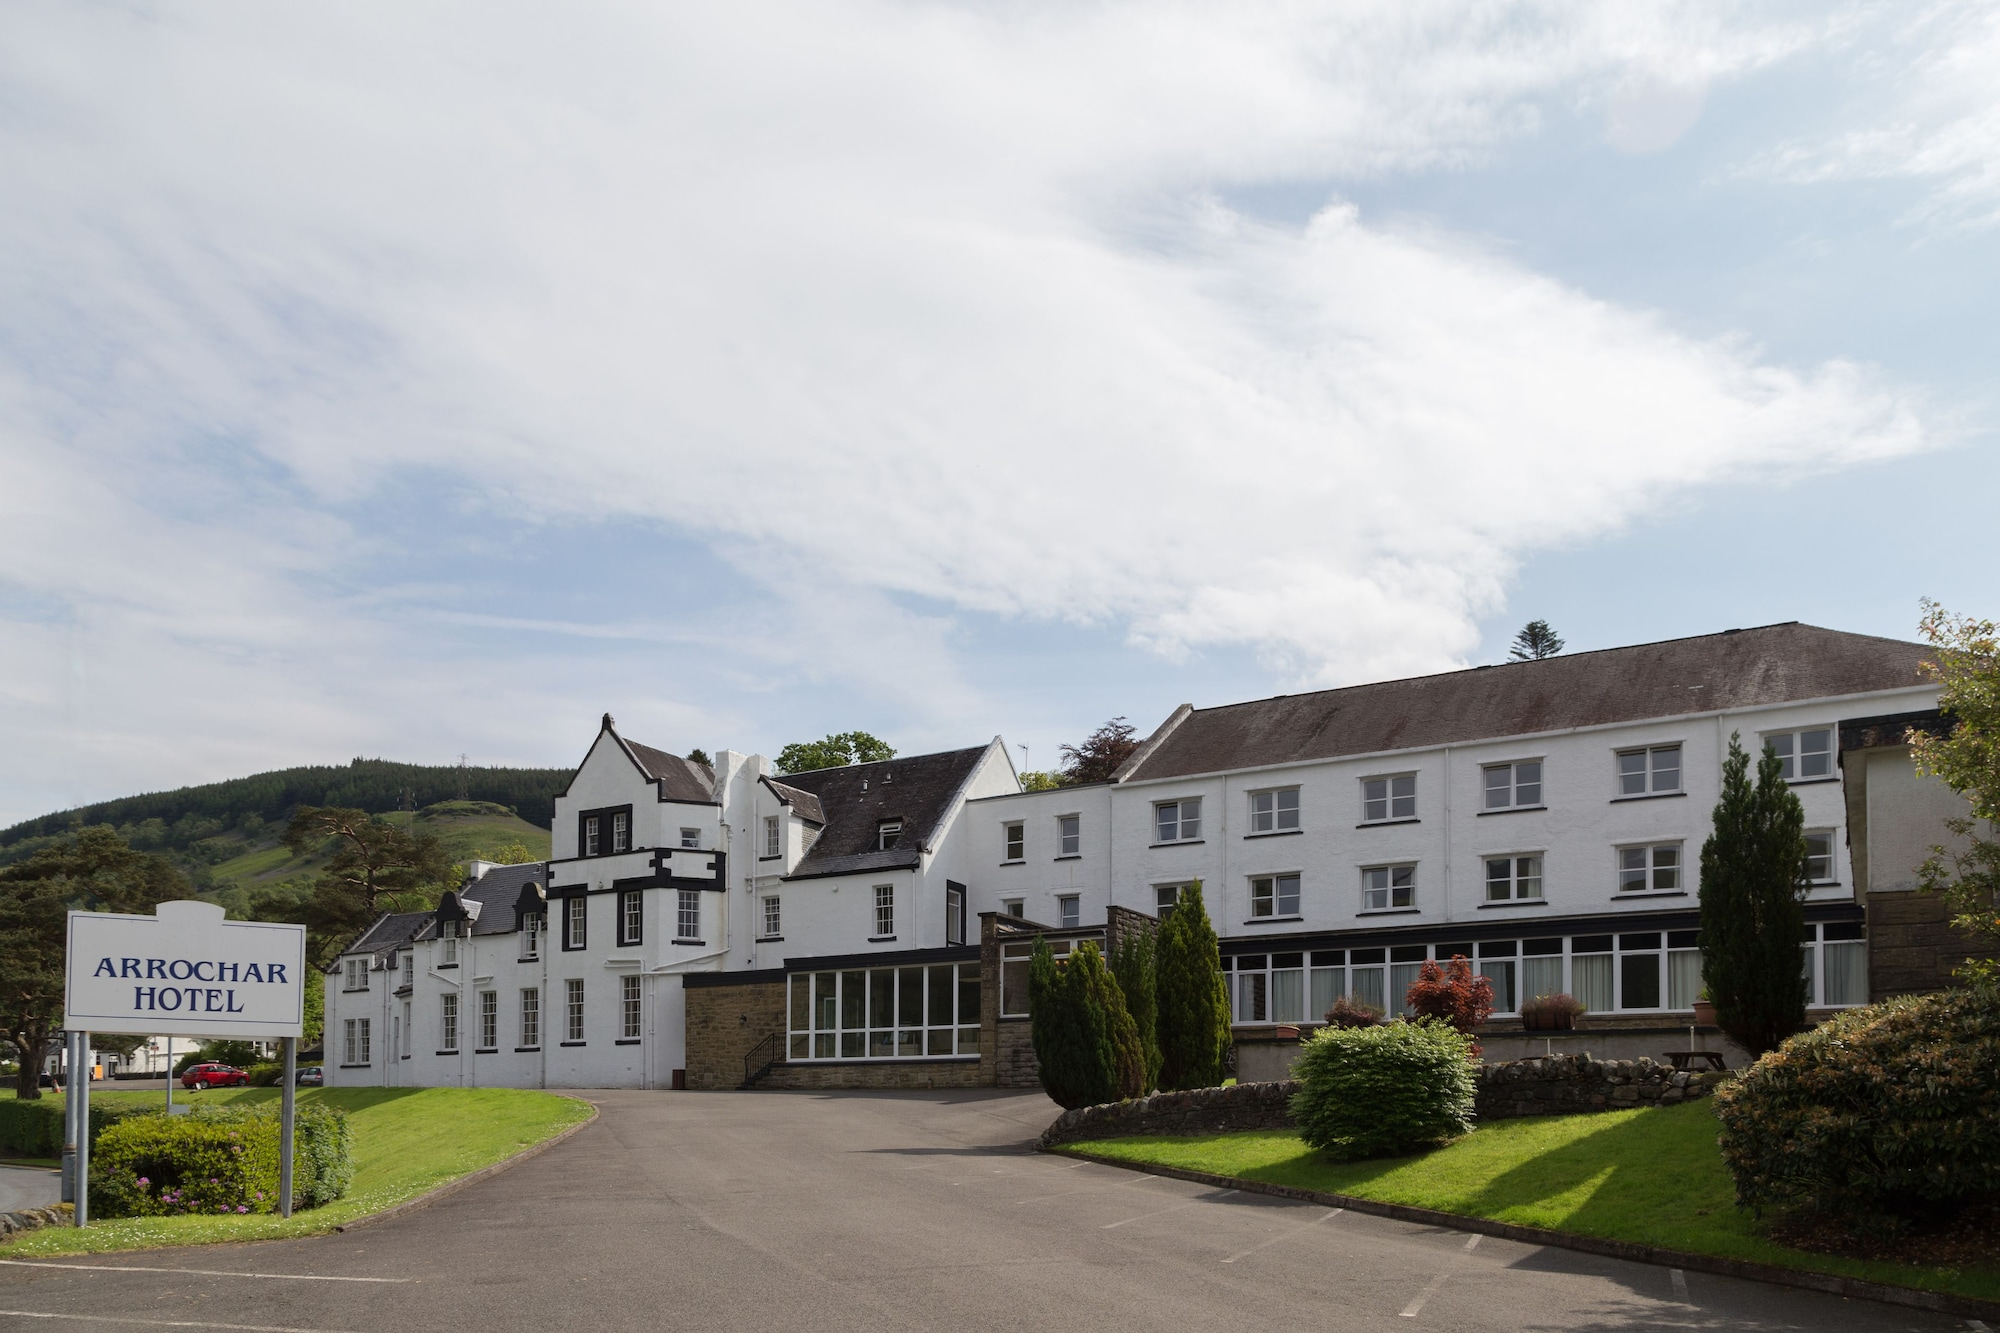 Arrochar Hotel, Argyll and Bute